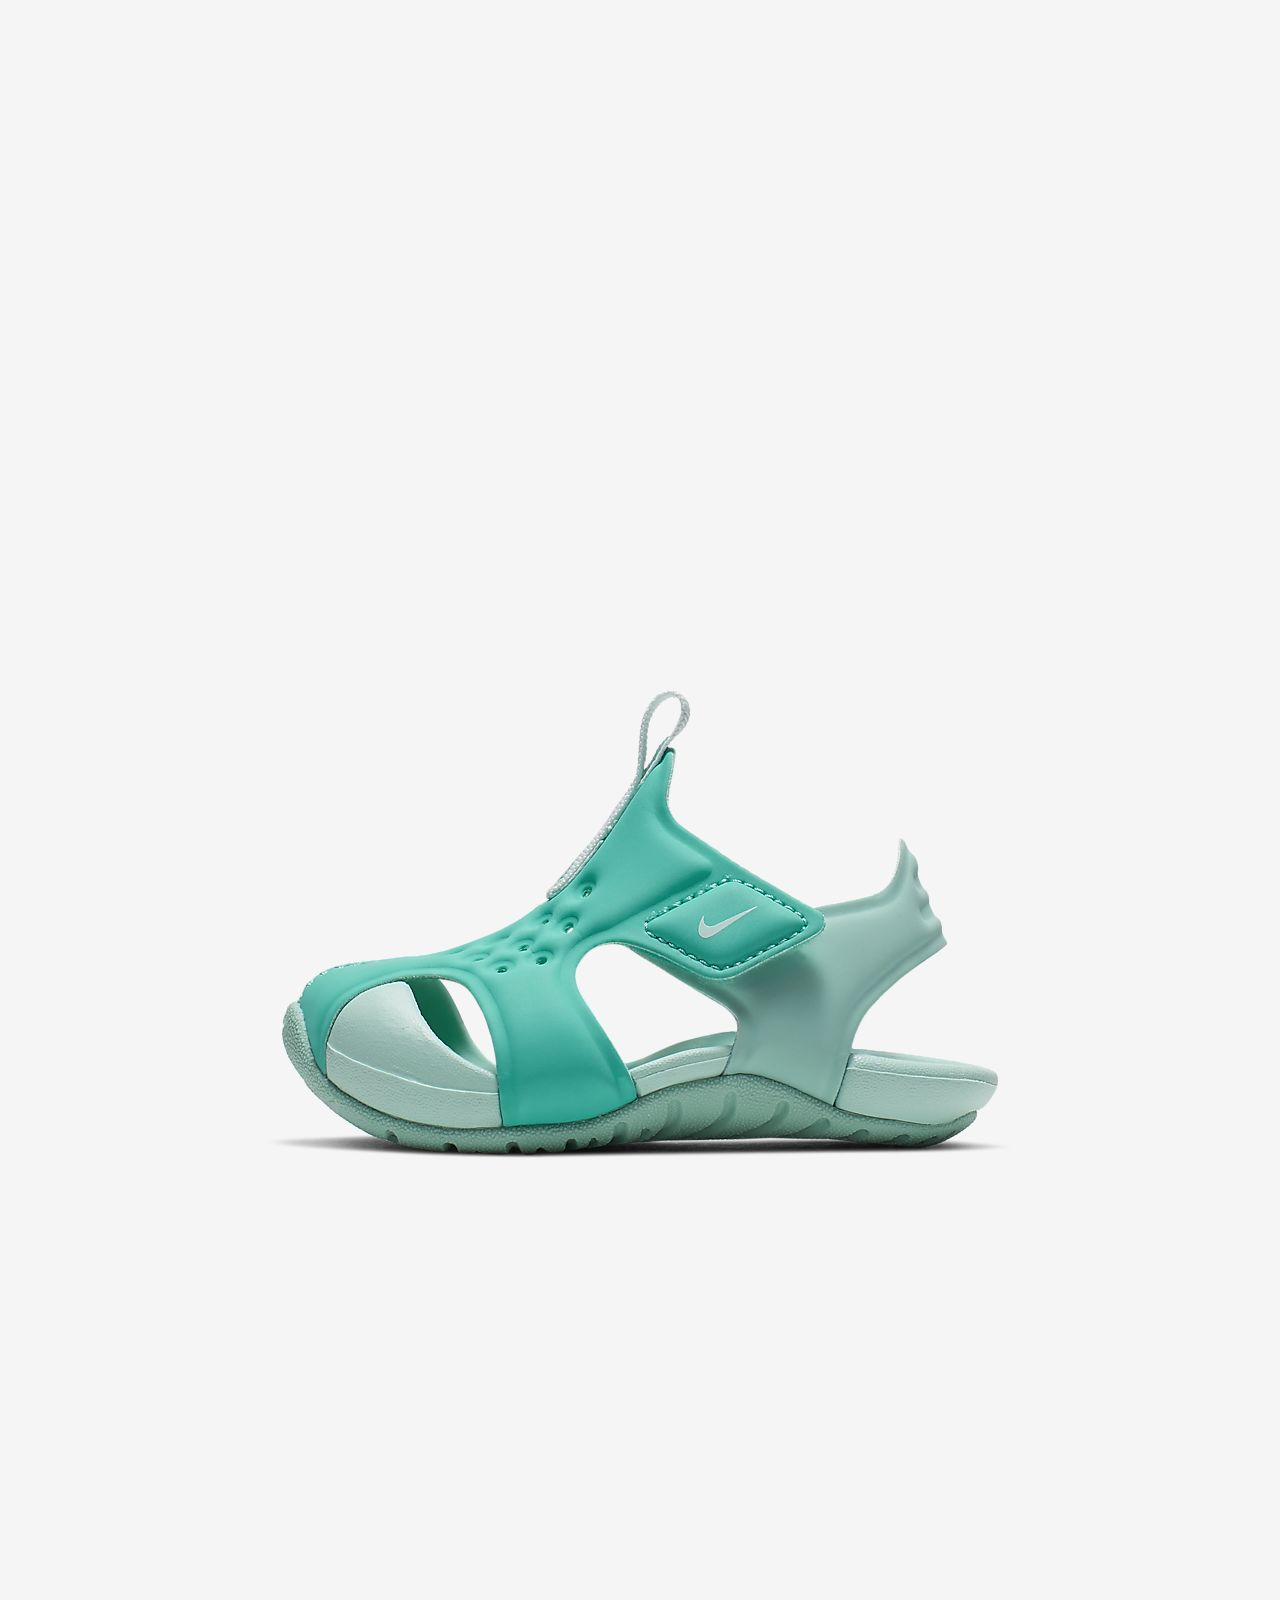 72d66d6d9be7 Nike Sunray Protect 2 Baby   Toddler Sandal. Nike.com ZA